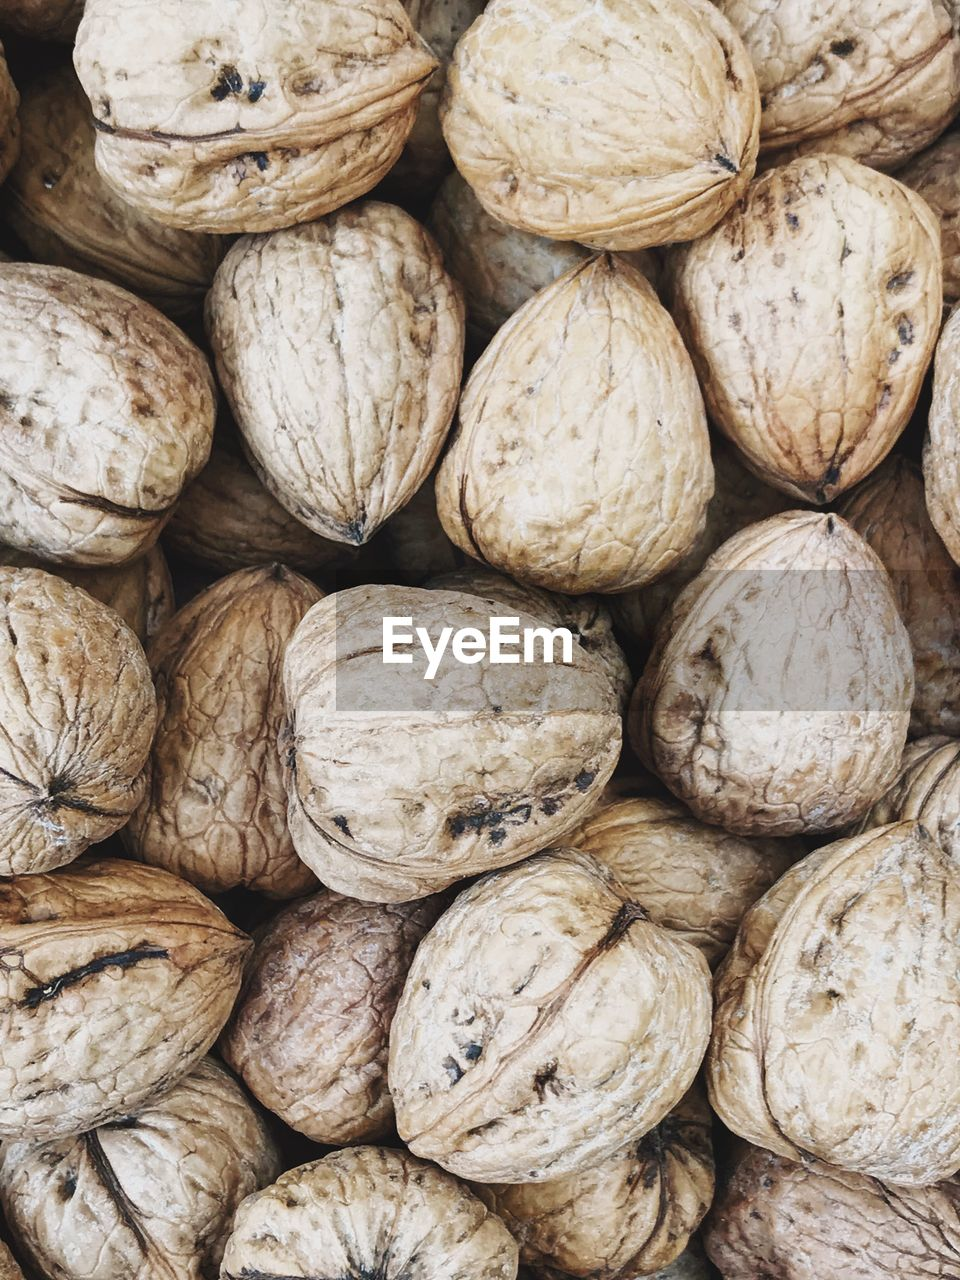 food and drink, large group of objects, full frame, backgrounds, abundance, freshness, food, still life, wellbeing, healthy eating, market, for sale, retail, no people, close-up, walnut, market stall, heap, nut, textured, sale